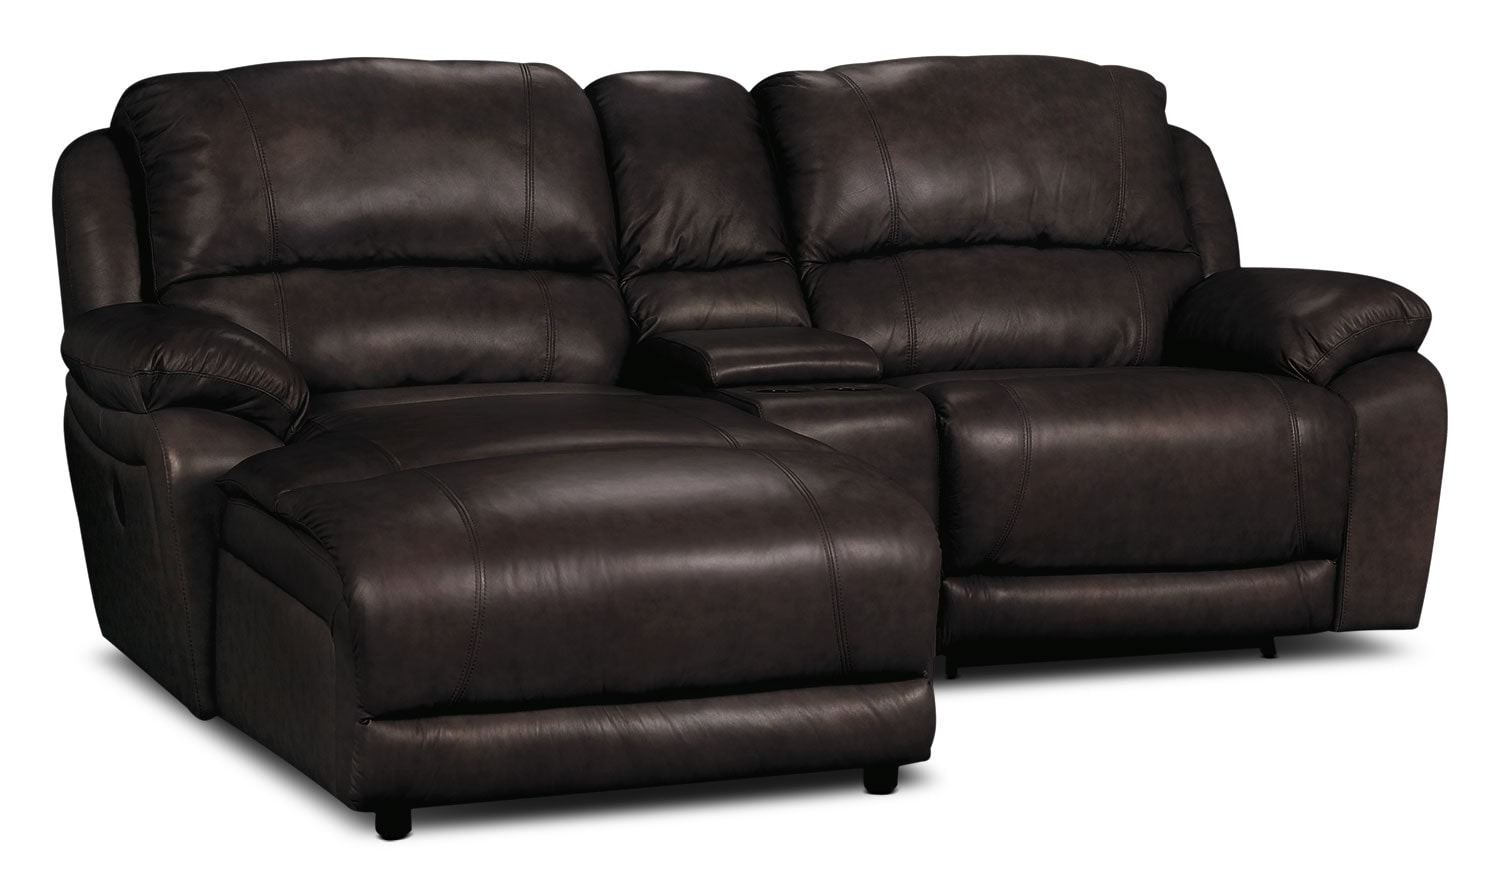 3 piece leather sectional sofa with chaise long cushions for sofas india marco genuine power